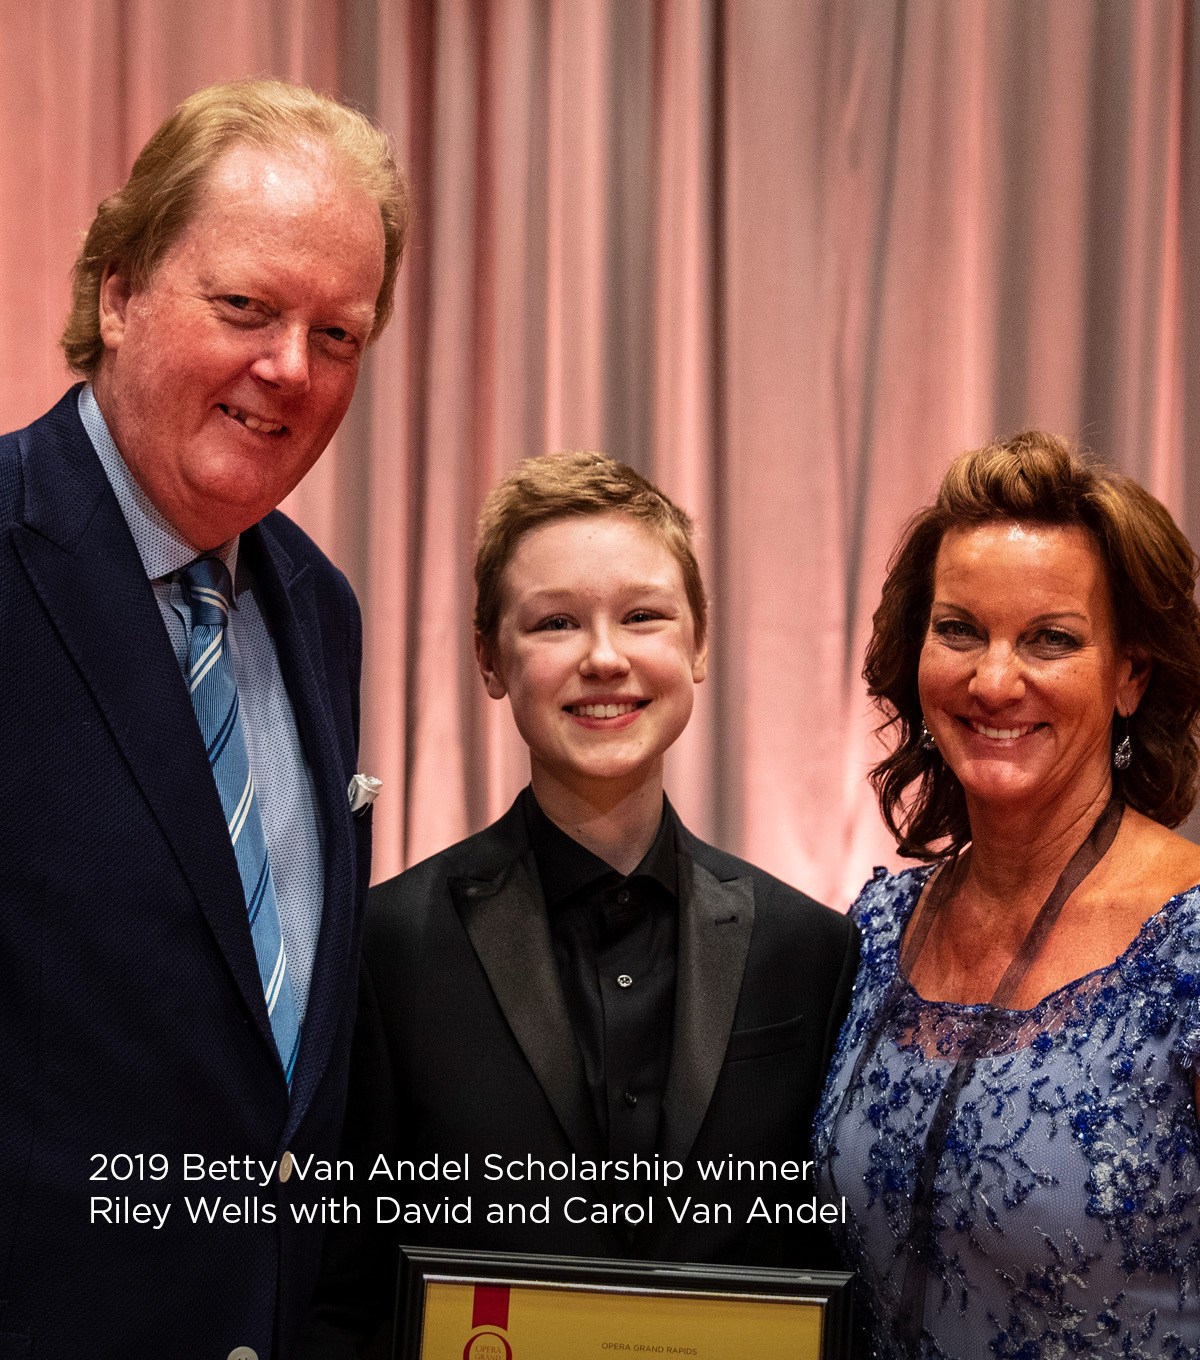 2019 Betty Van Andel Scholarship winner Riley Wells with David and Carol Van Andel